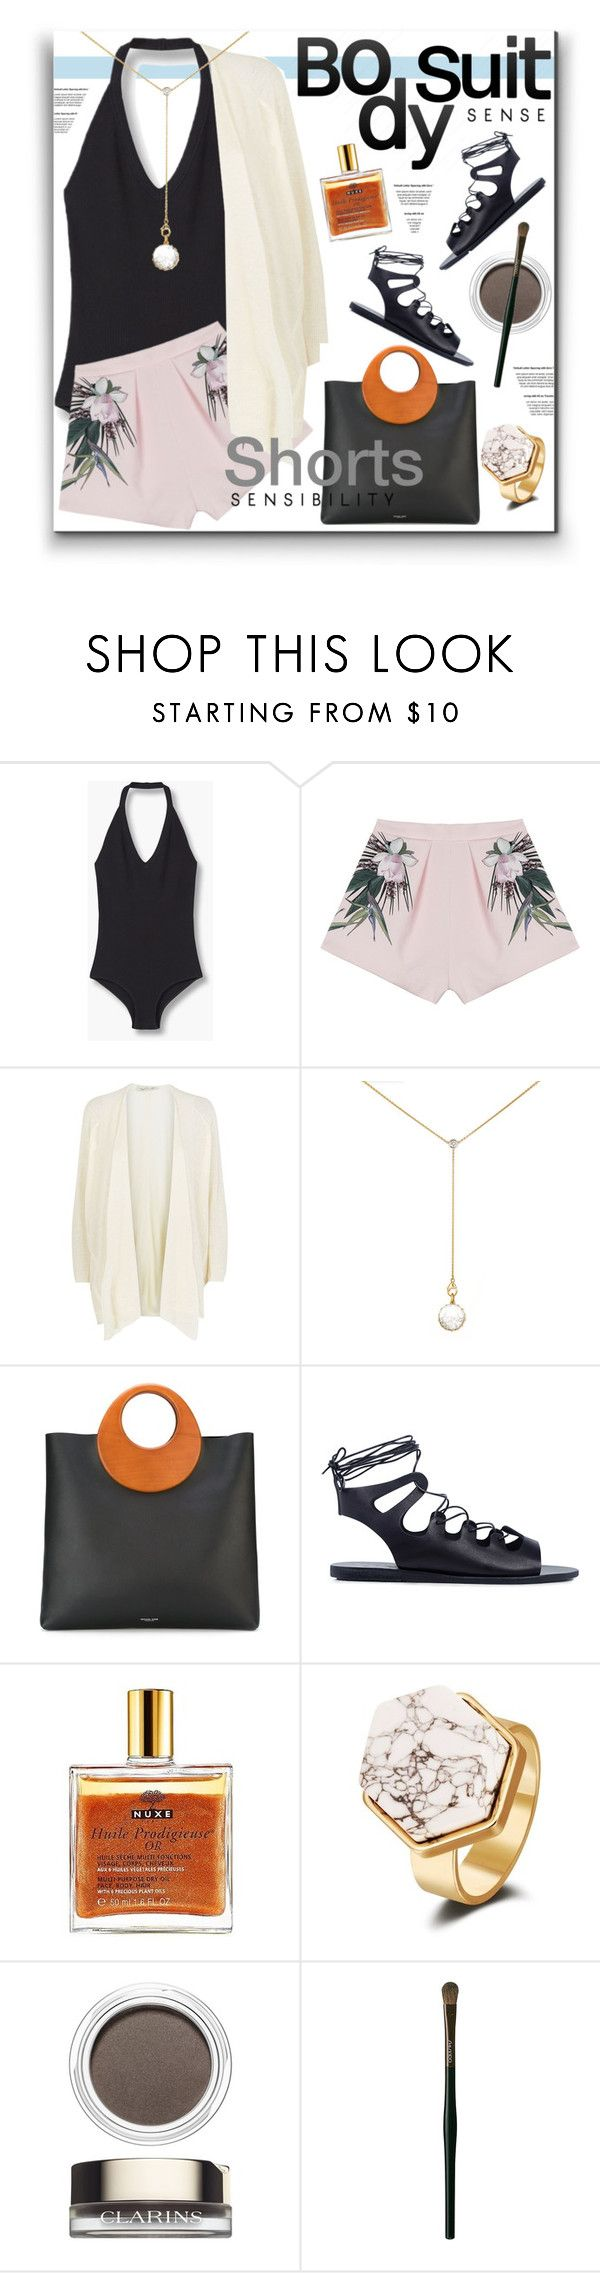 """""""Bodysuit"""" by watereverysunday on Polyvore featuring MANGO, Style Stalker, Damsel in a Dress, Renee Lewis, Michael Kors, Ancient Greek Sandals, Nuxe, Clarins, Shiseido and shorts"""